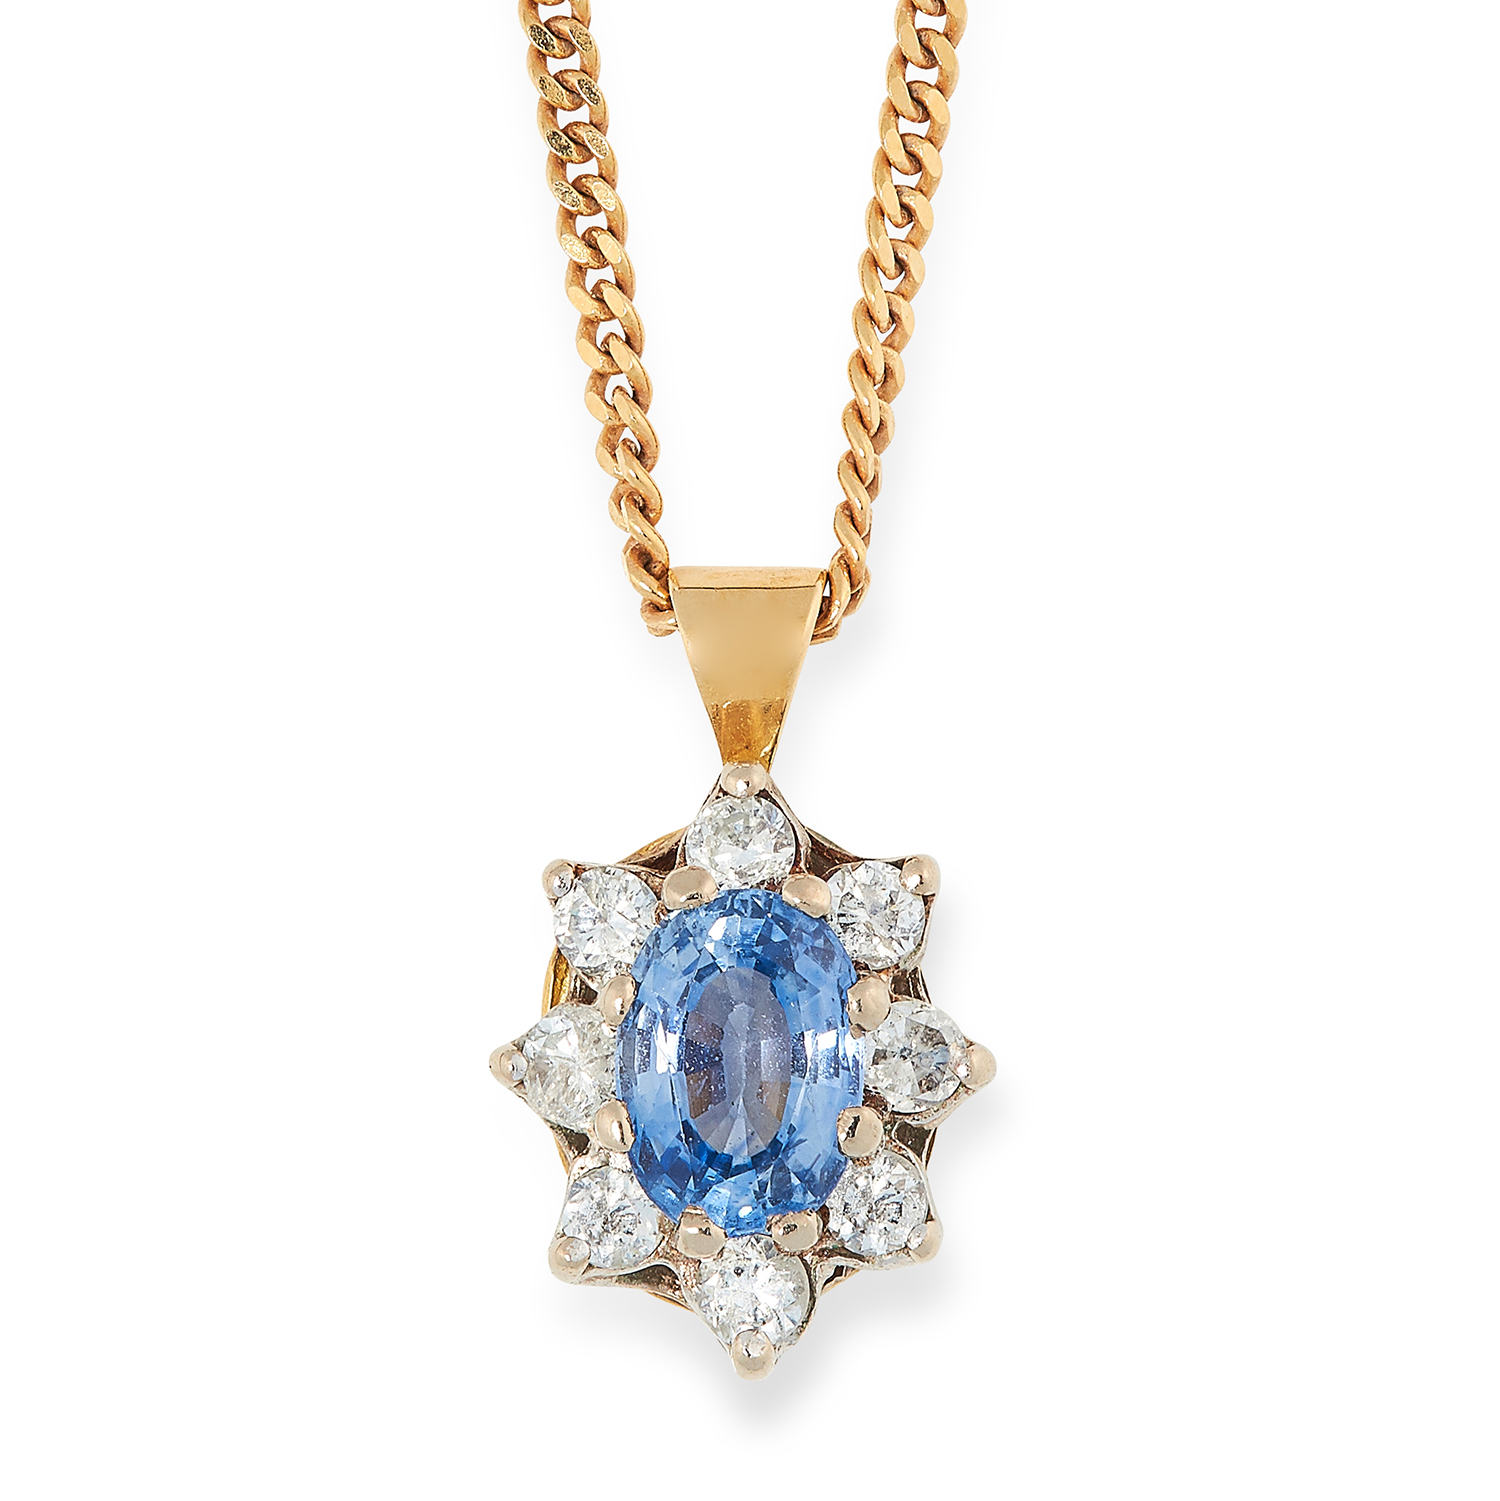 SAPPHIRE AND DIAMOND CLUSTER PENDANT set with an oval cut sapphire and round cut diamonds, 1cm, 4.